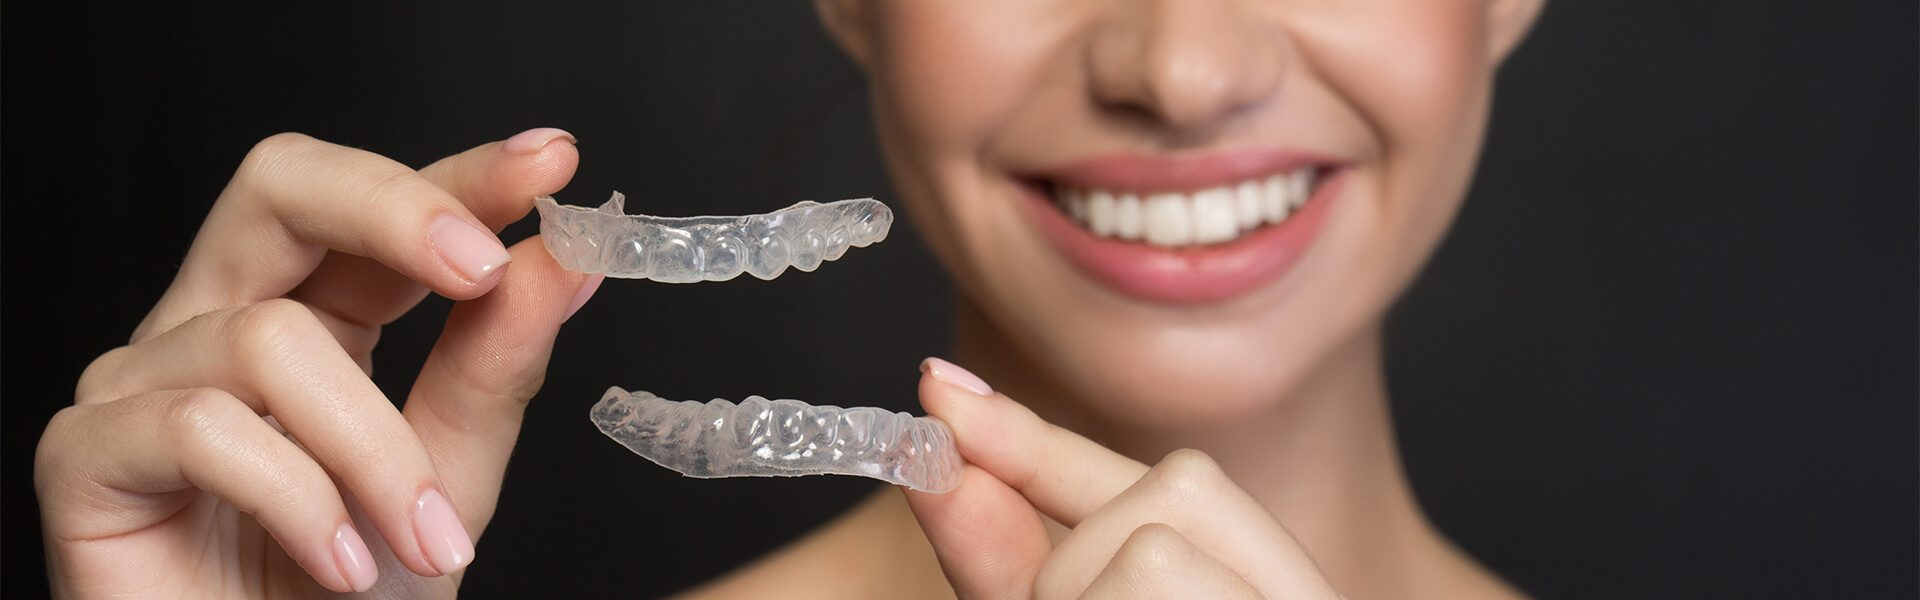 Benefits of Invisalign Treatment for Adults in Glendale Heights, IL